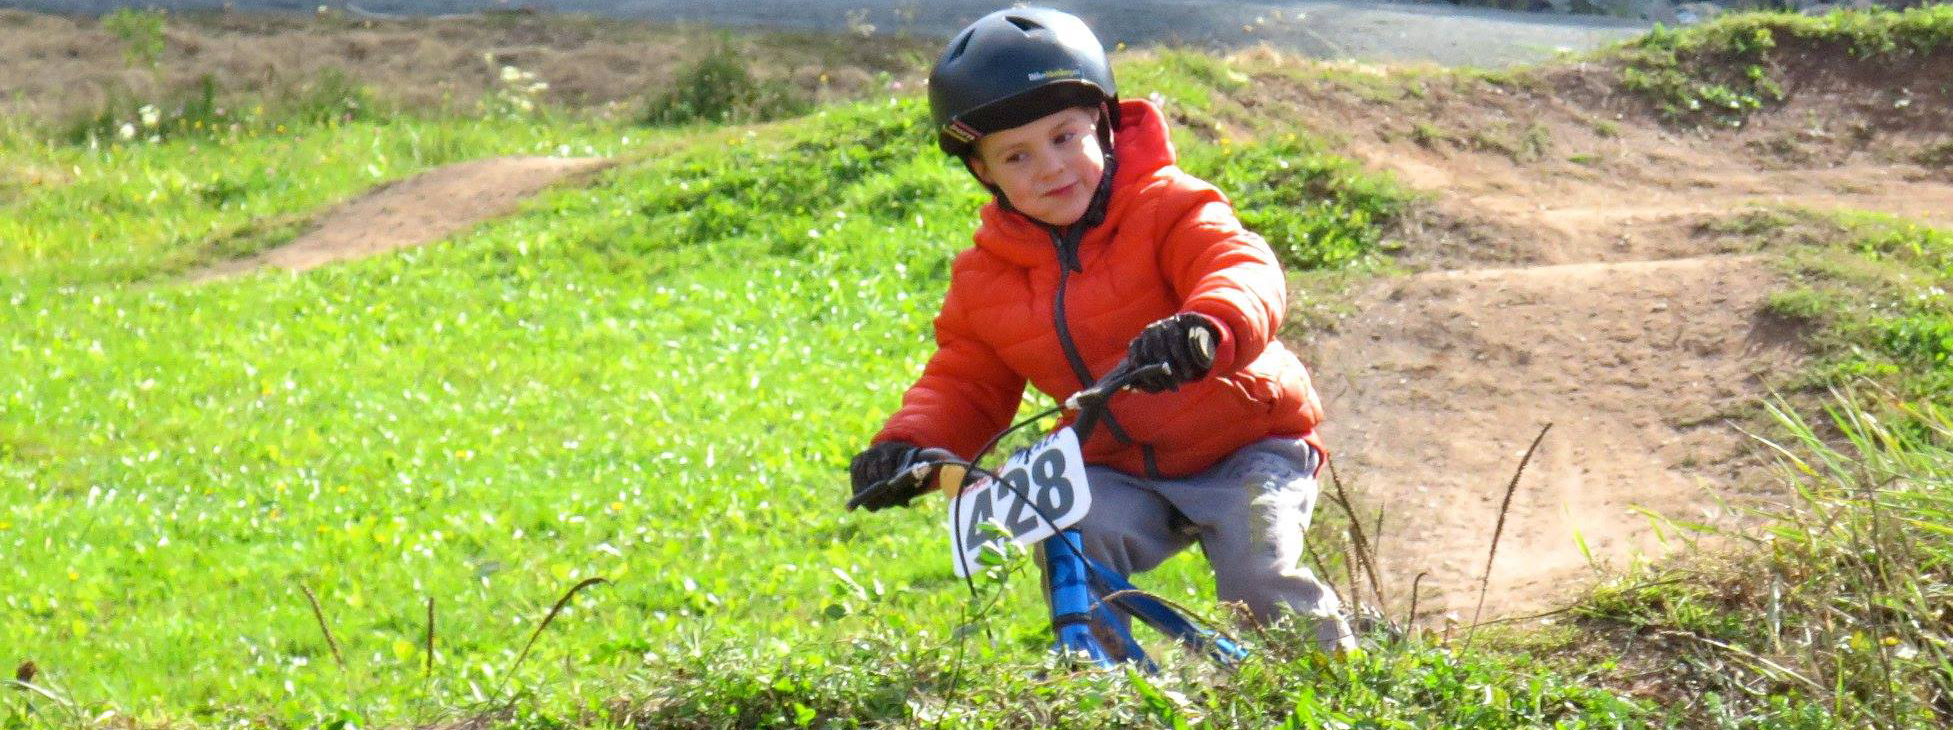 Youth rider on the pump track at Keppoch Mountain